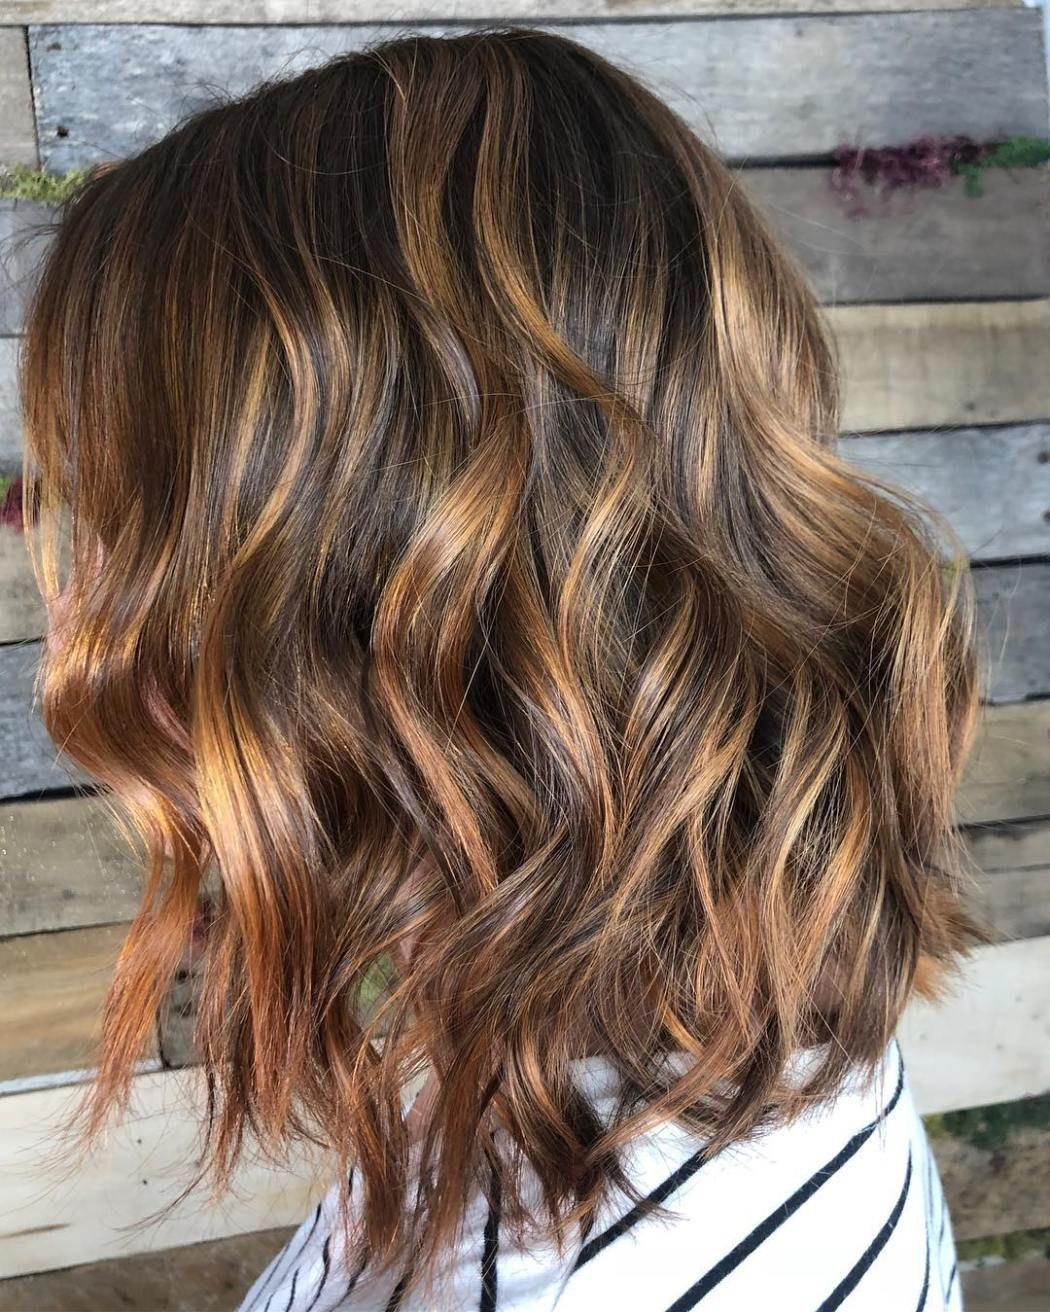 60 Looks with Caramel Highlights on Brown and Dark Brown ... - photo #9